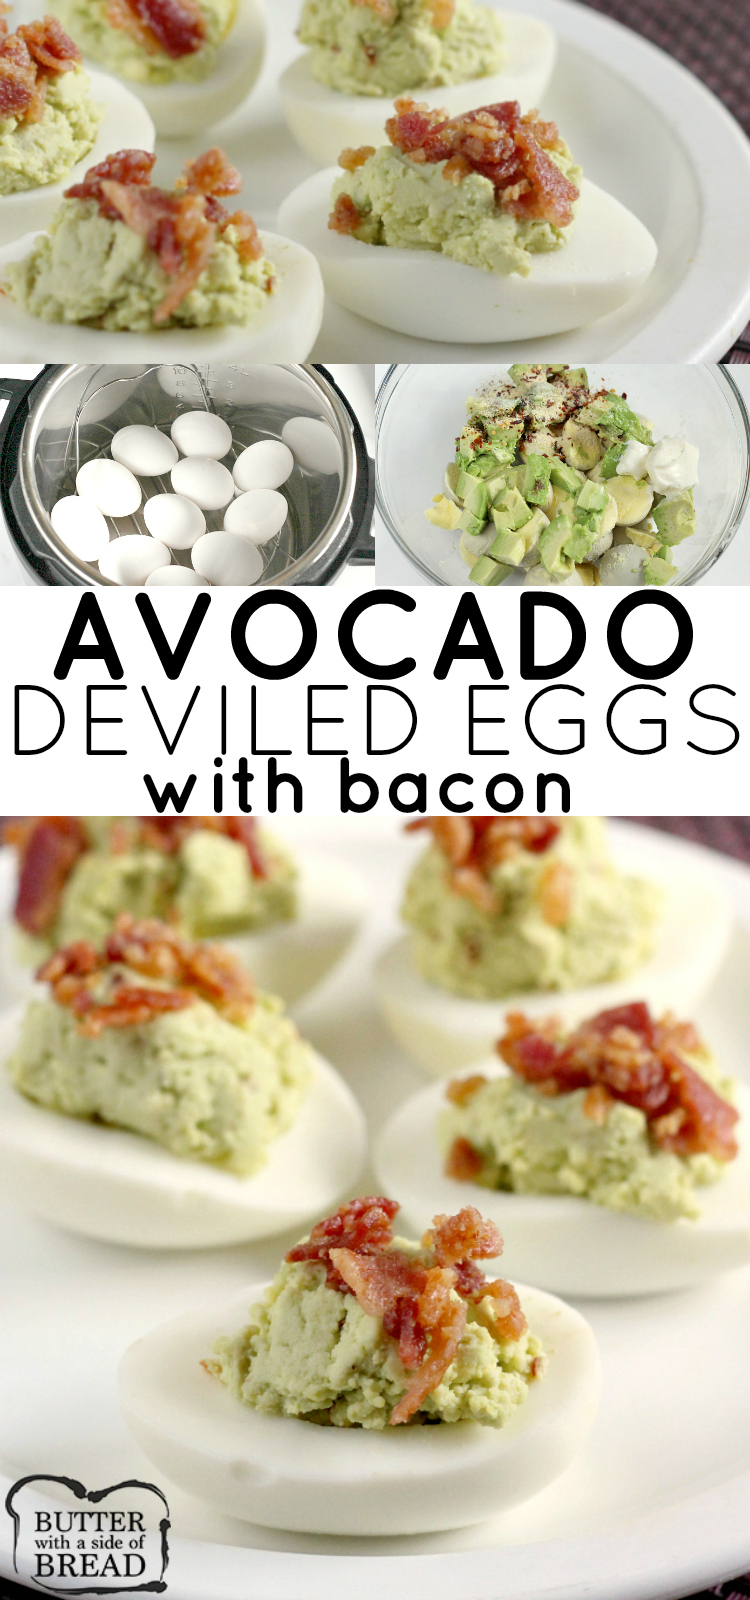 Bacon Avocado Deviled Eggs made with all the classic deviled egg ingredients, plus avocado! Creamy, flavorful and easy appetizer recipe with bacon on top. These are THE BEST deviled eggs you'll ever try!